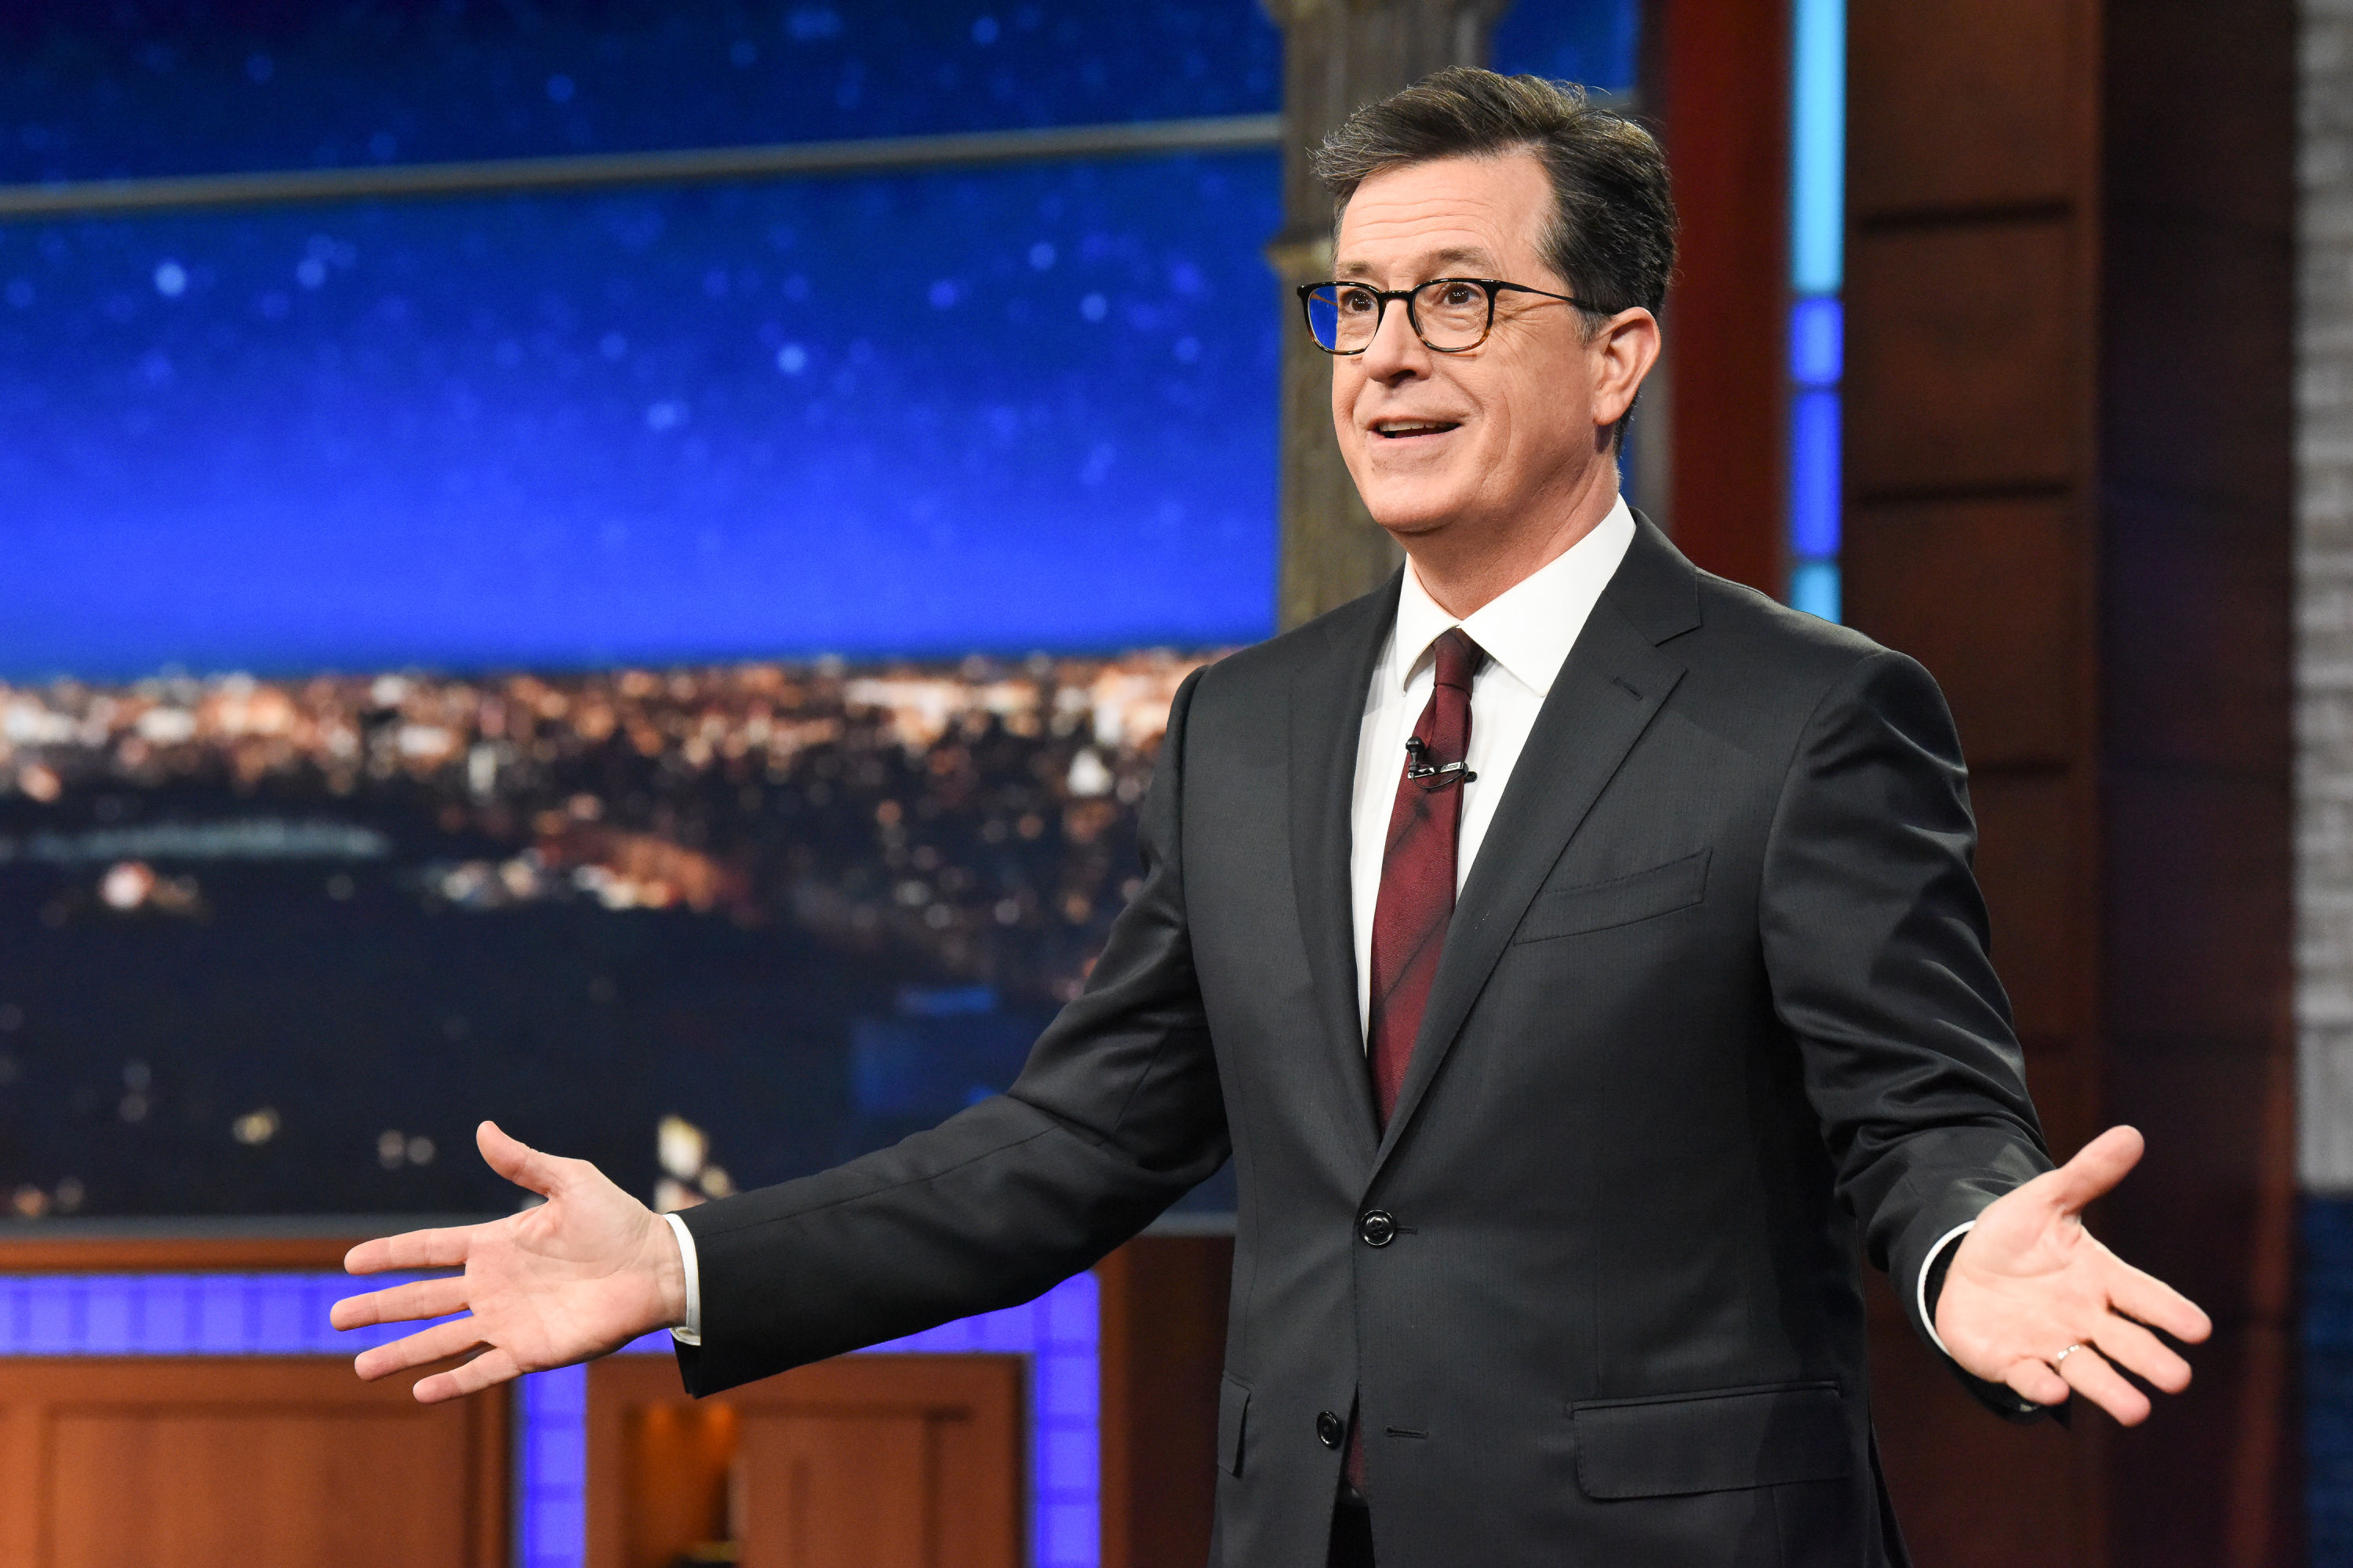 Stephen Colbert Goes on Hilarious Rant About North Carolina Barbecue